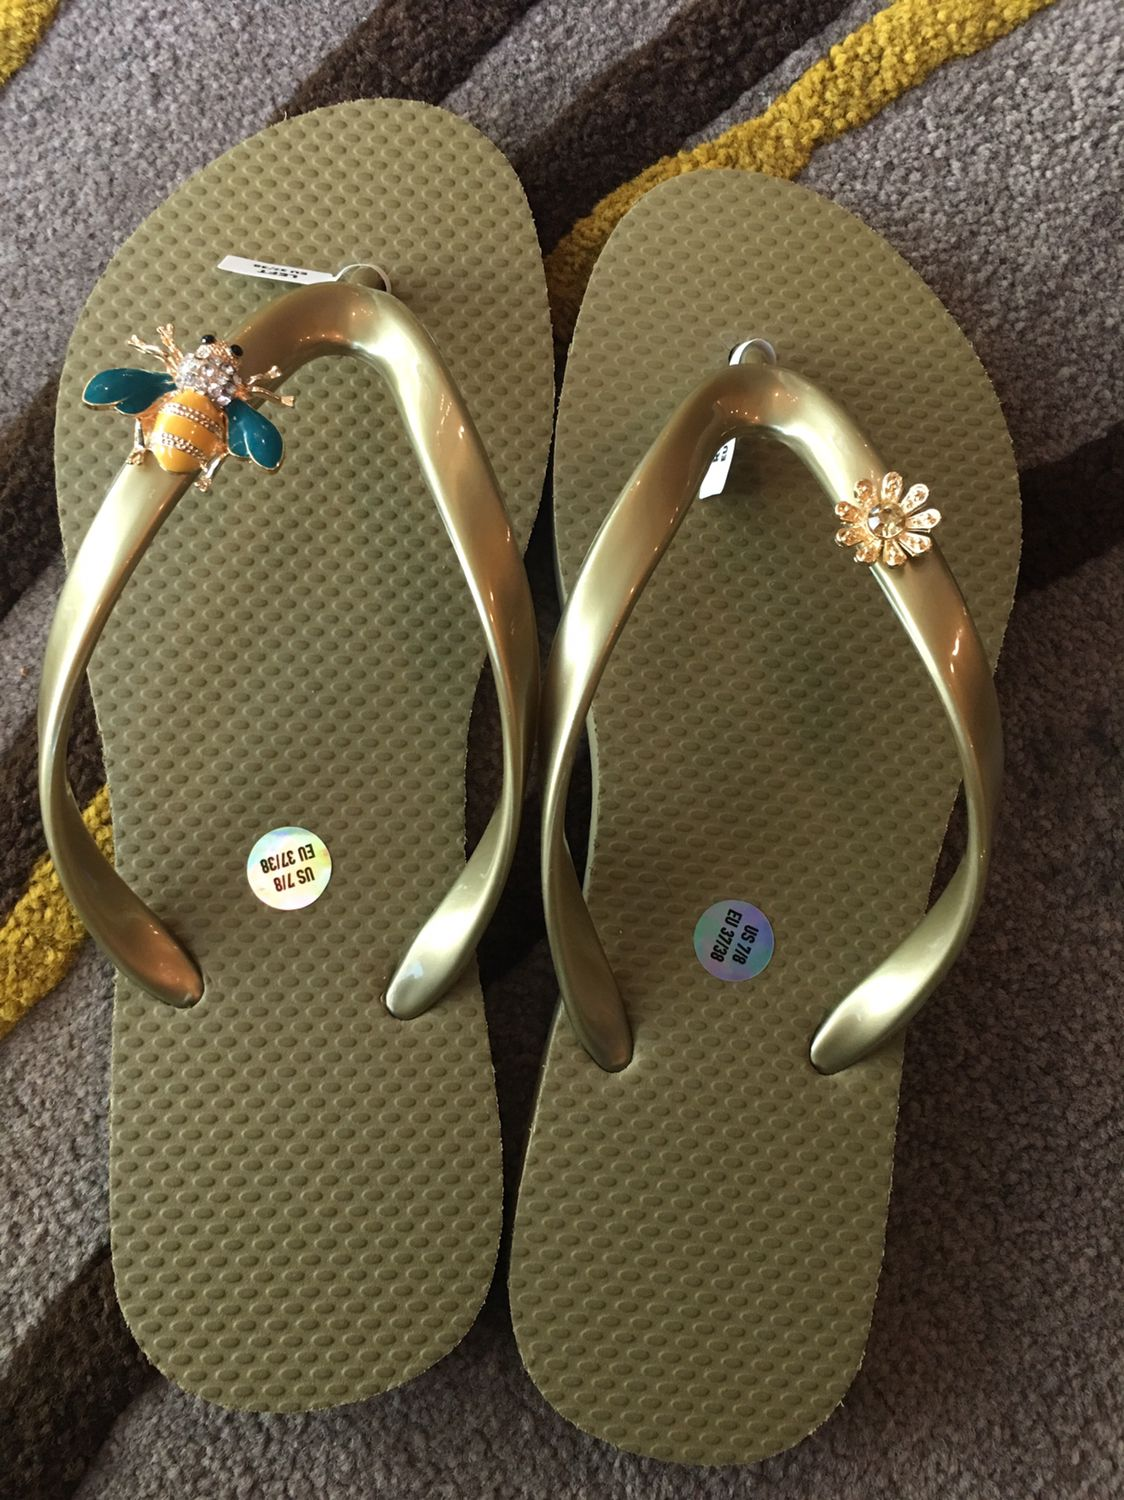 ad62f2a656c Pin by BaiaBaia on FlipFlops in 2019